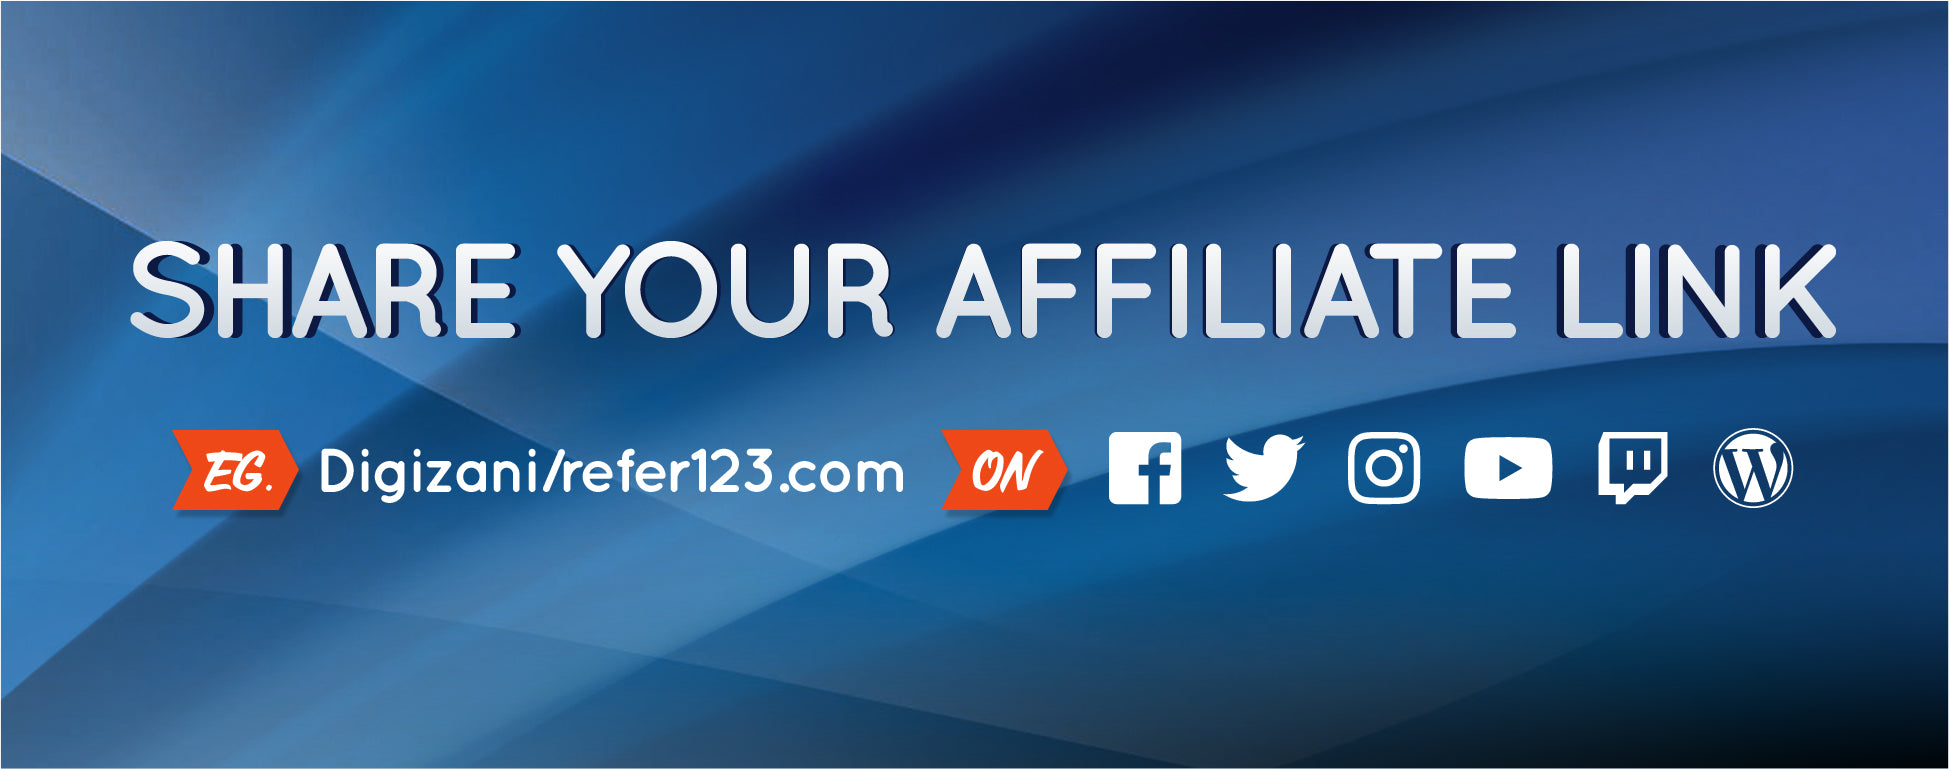 Share your affiliate link